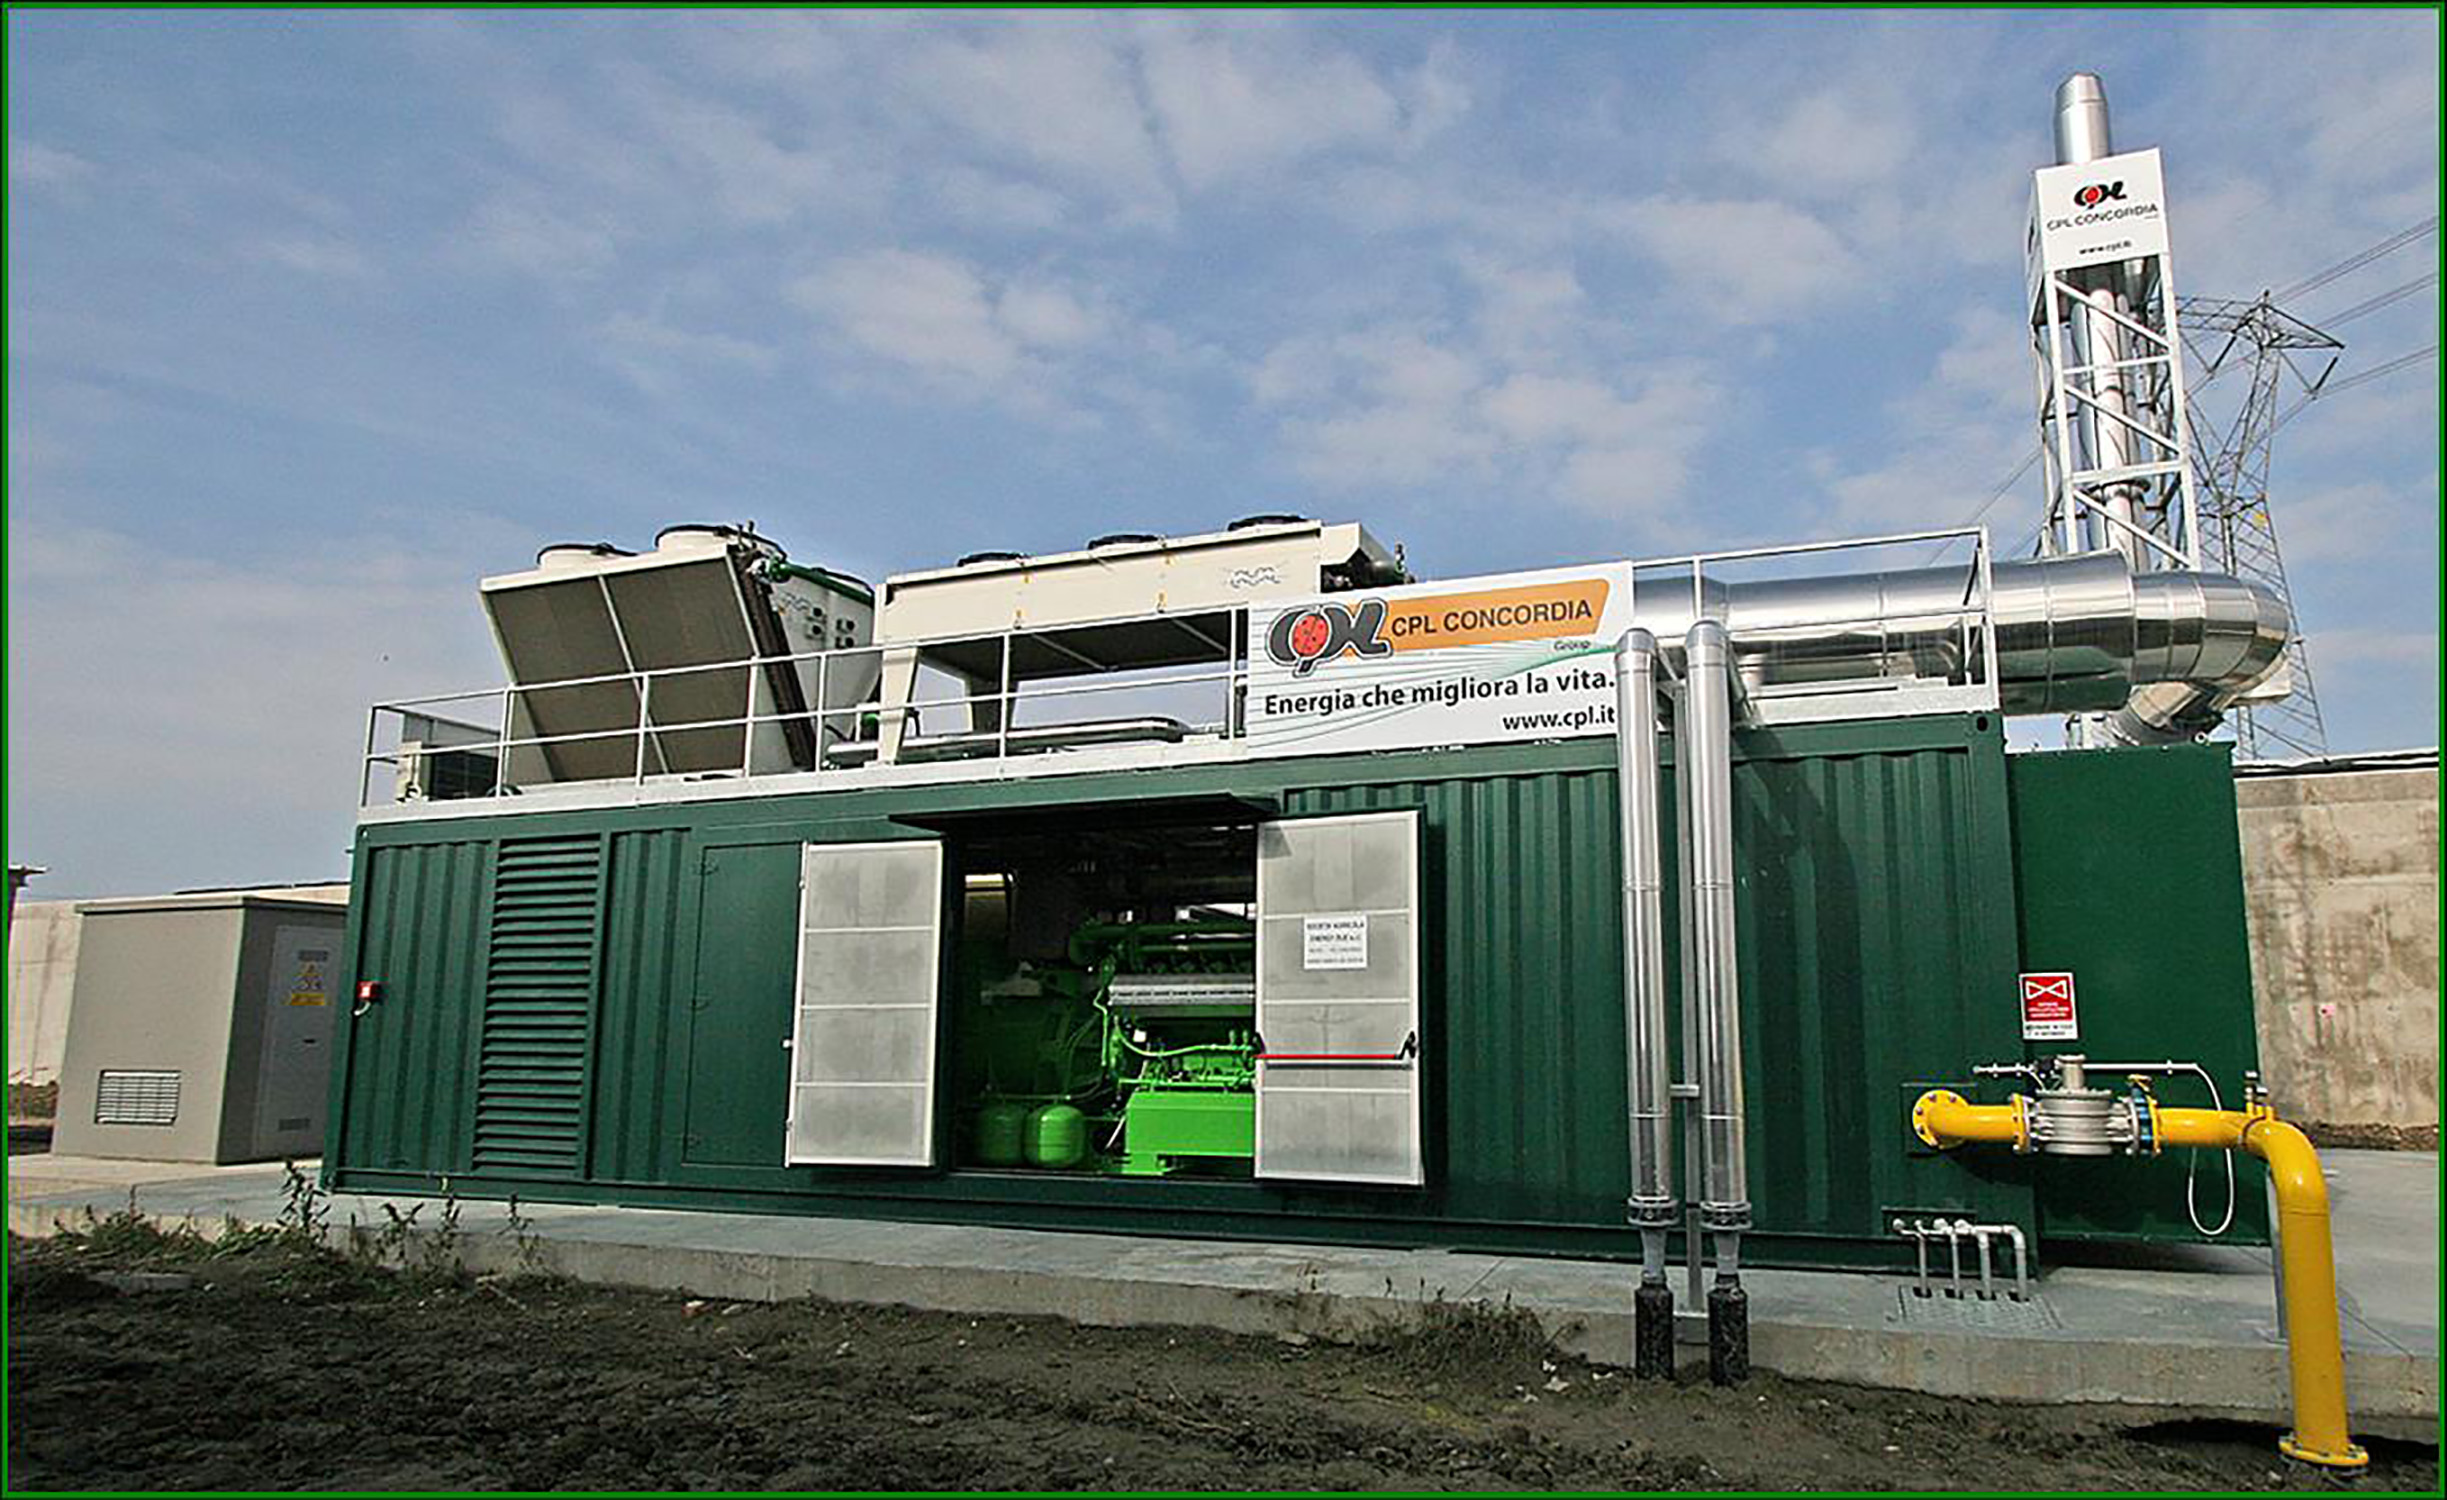 4MW biomass power station aims for zero carbon footprint